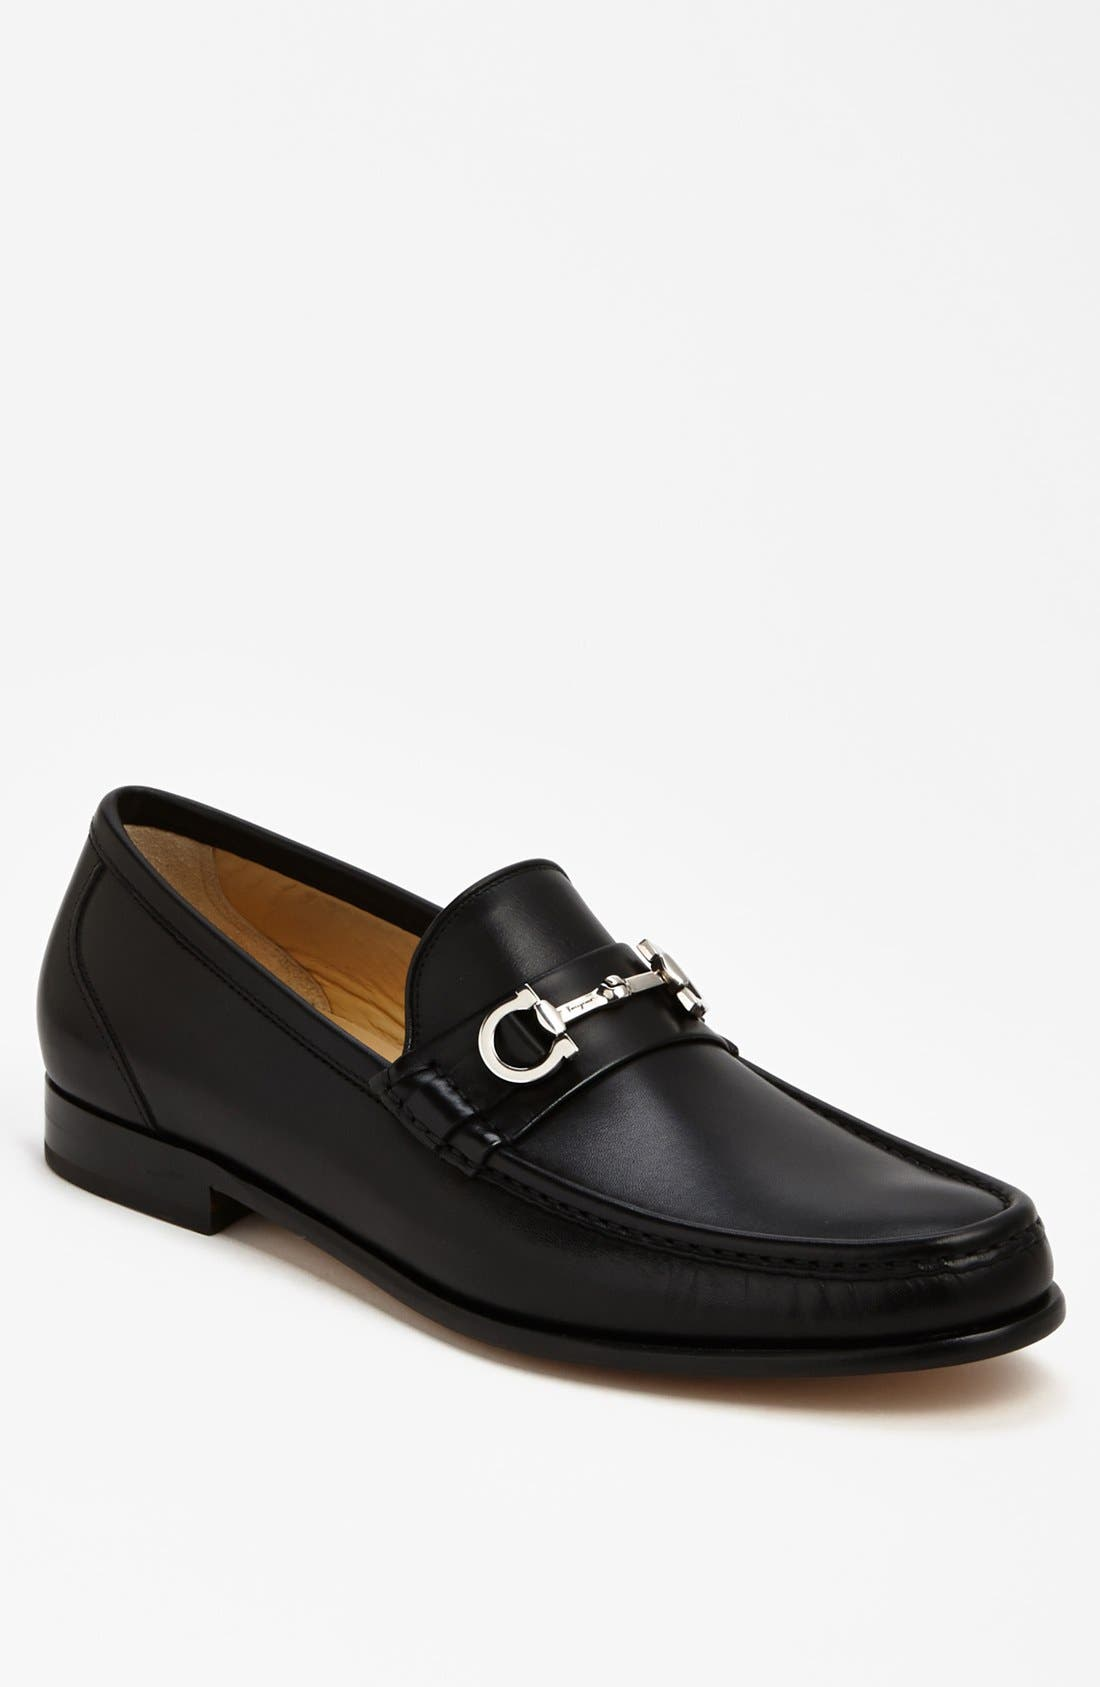 'Giostra' Bit Loafer, Main, color, 001